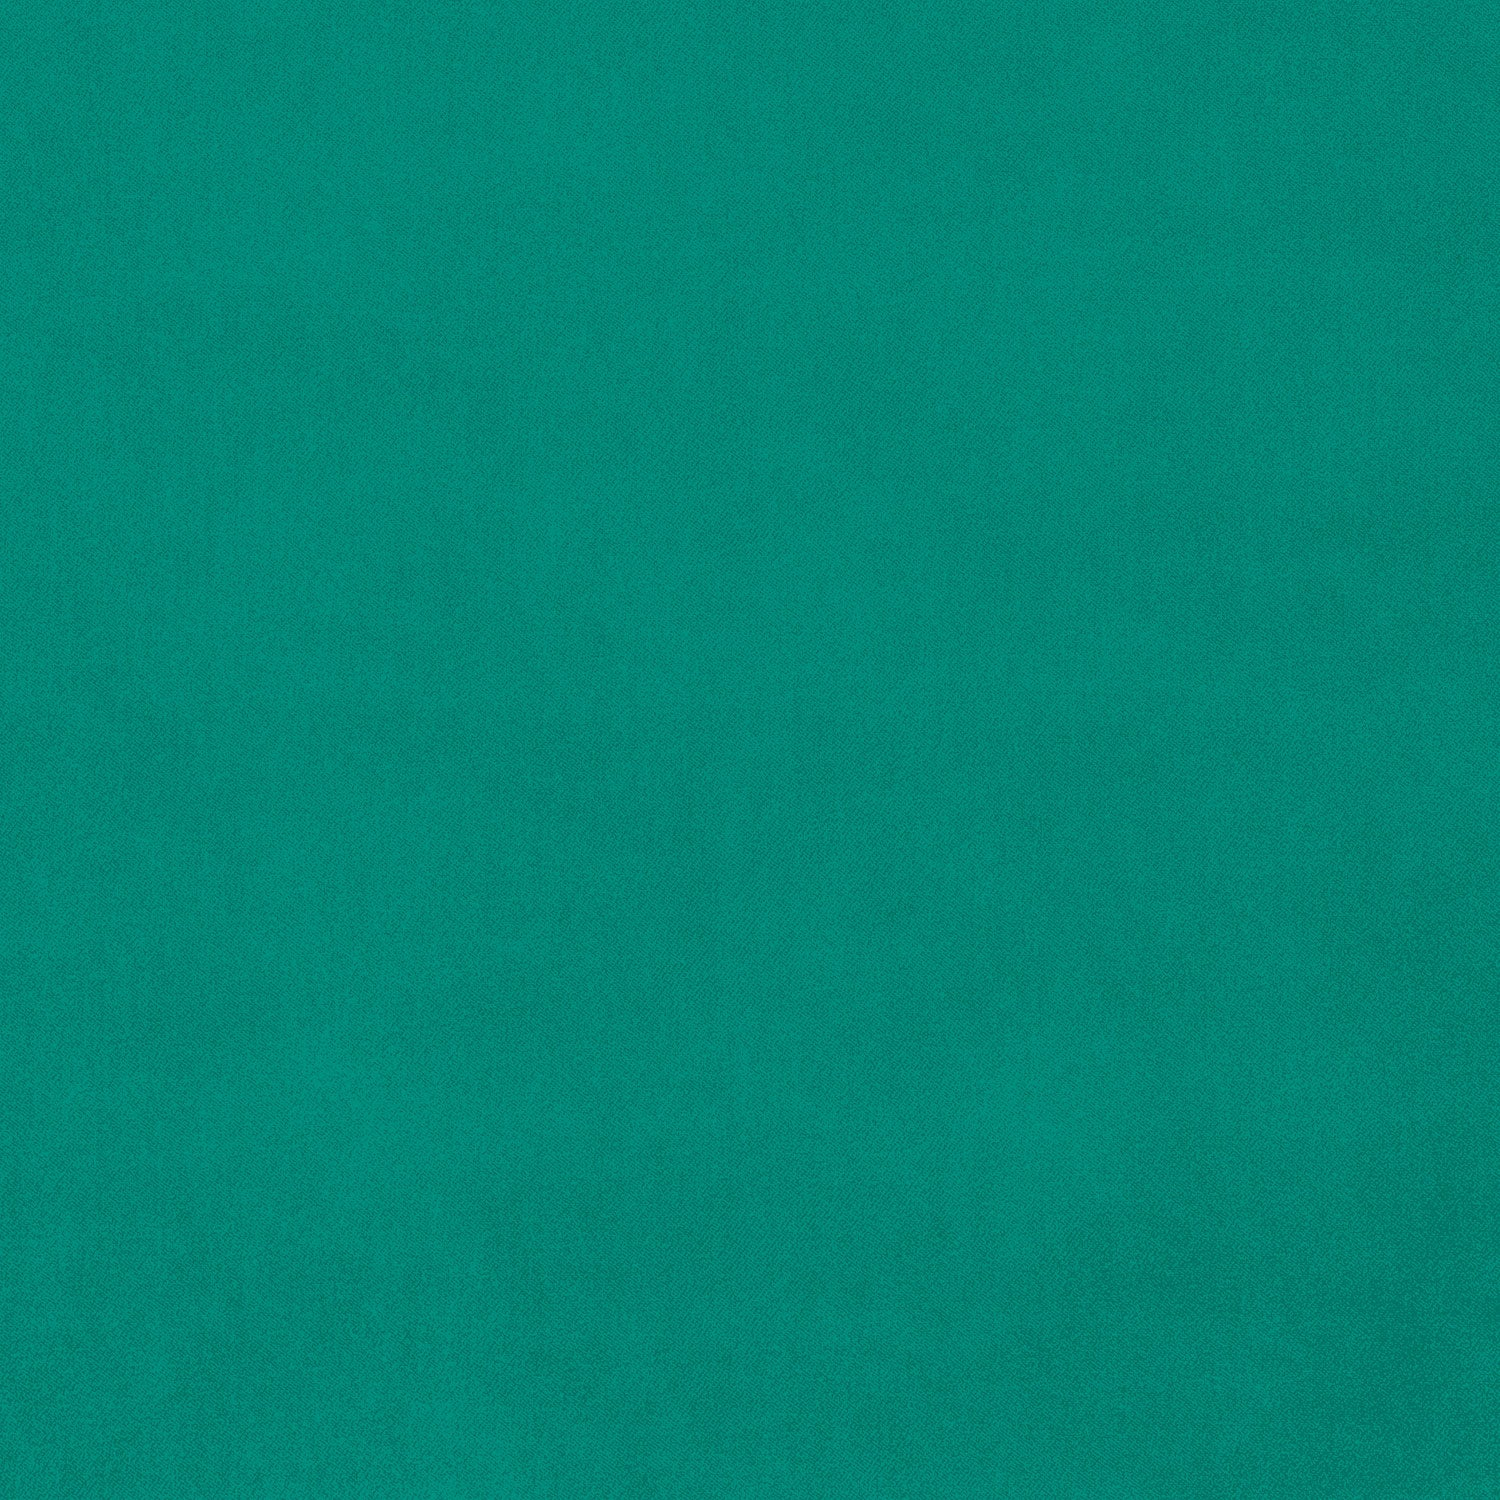 Turquoise velvet fabric for curtains and upholstery with a stain resistant finish